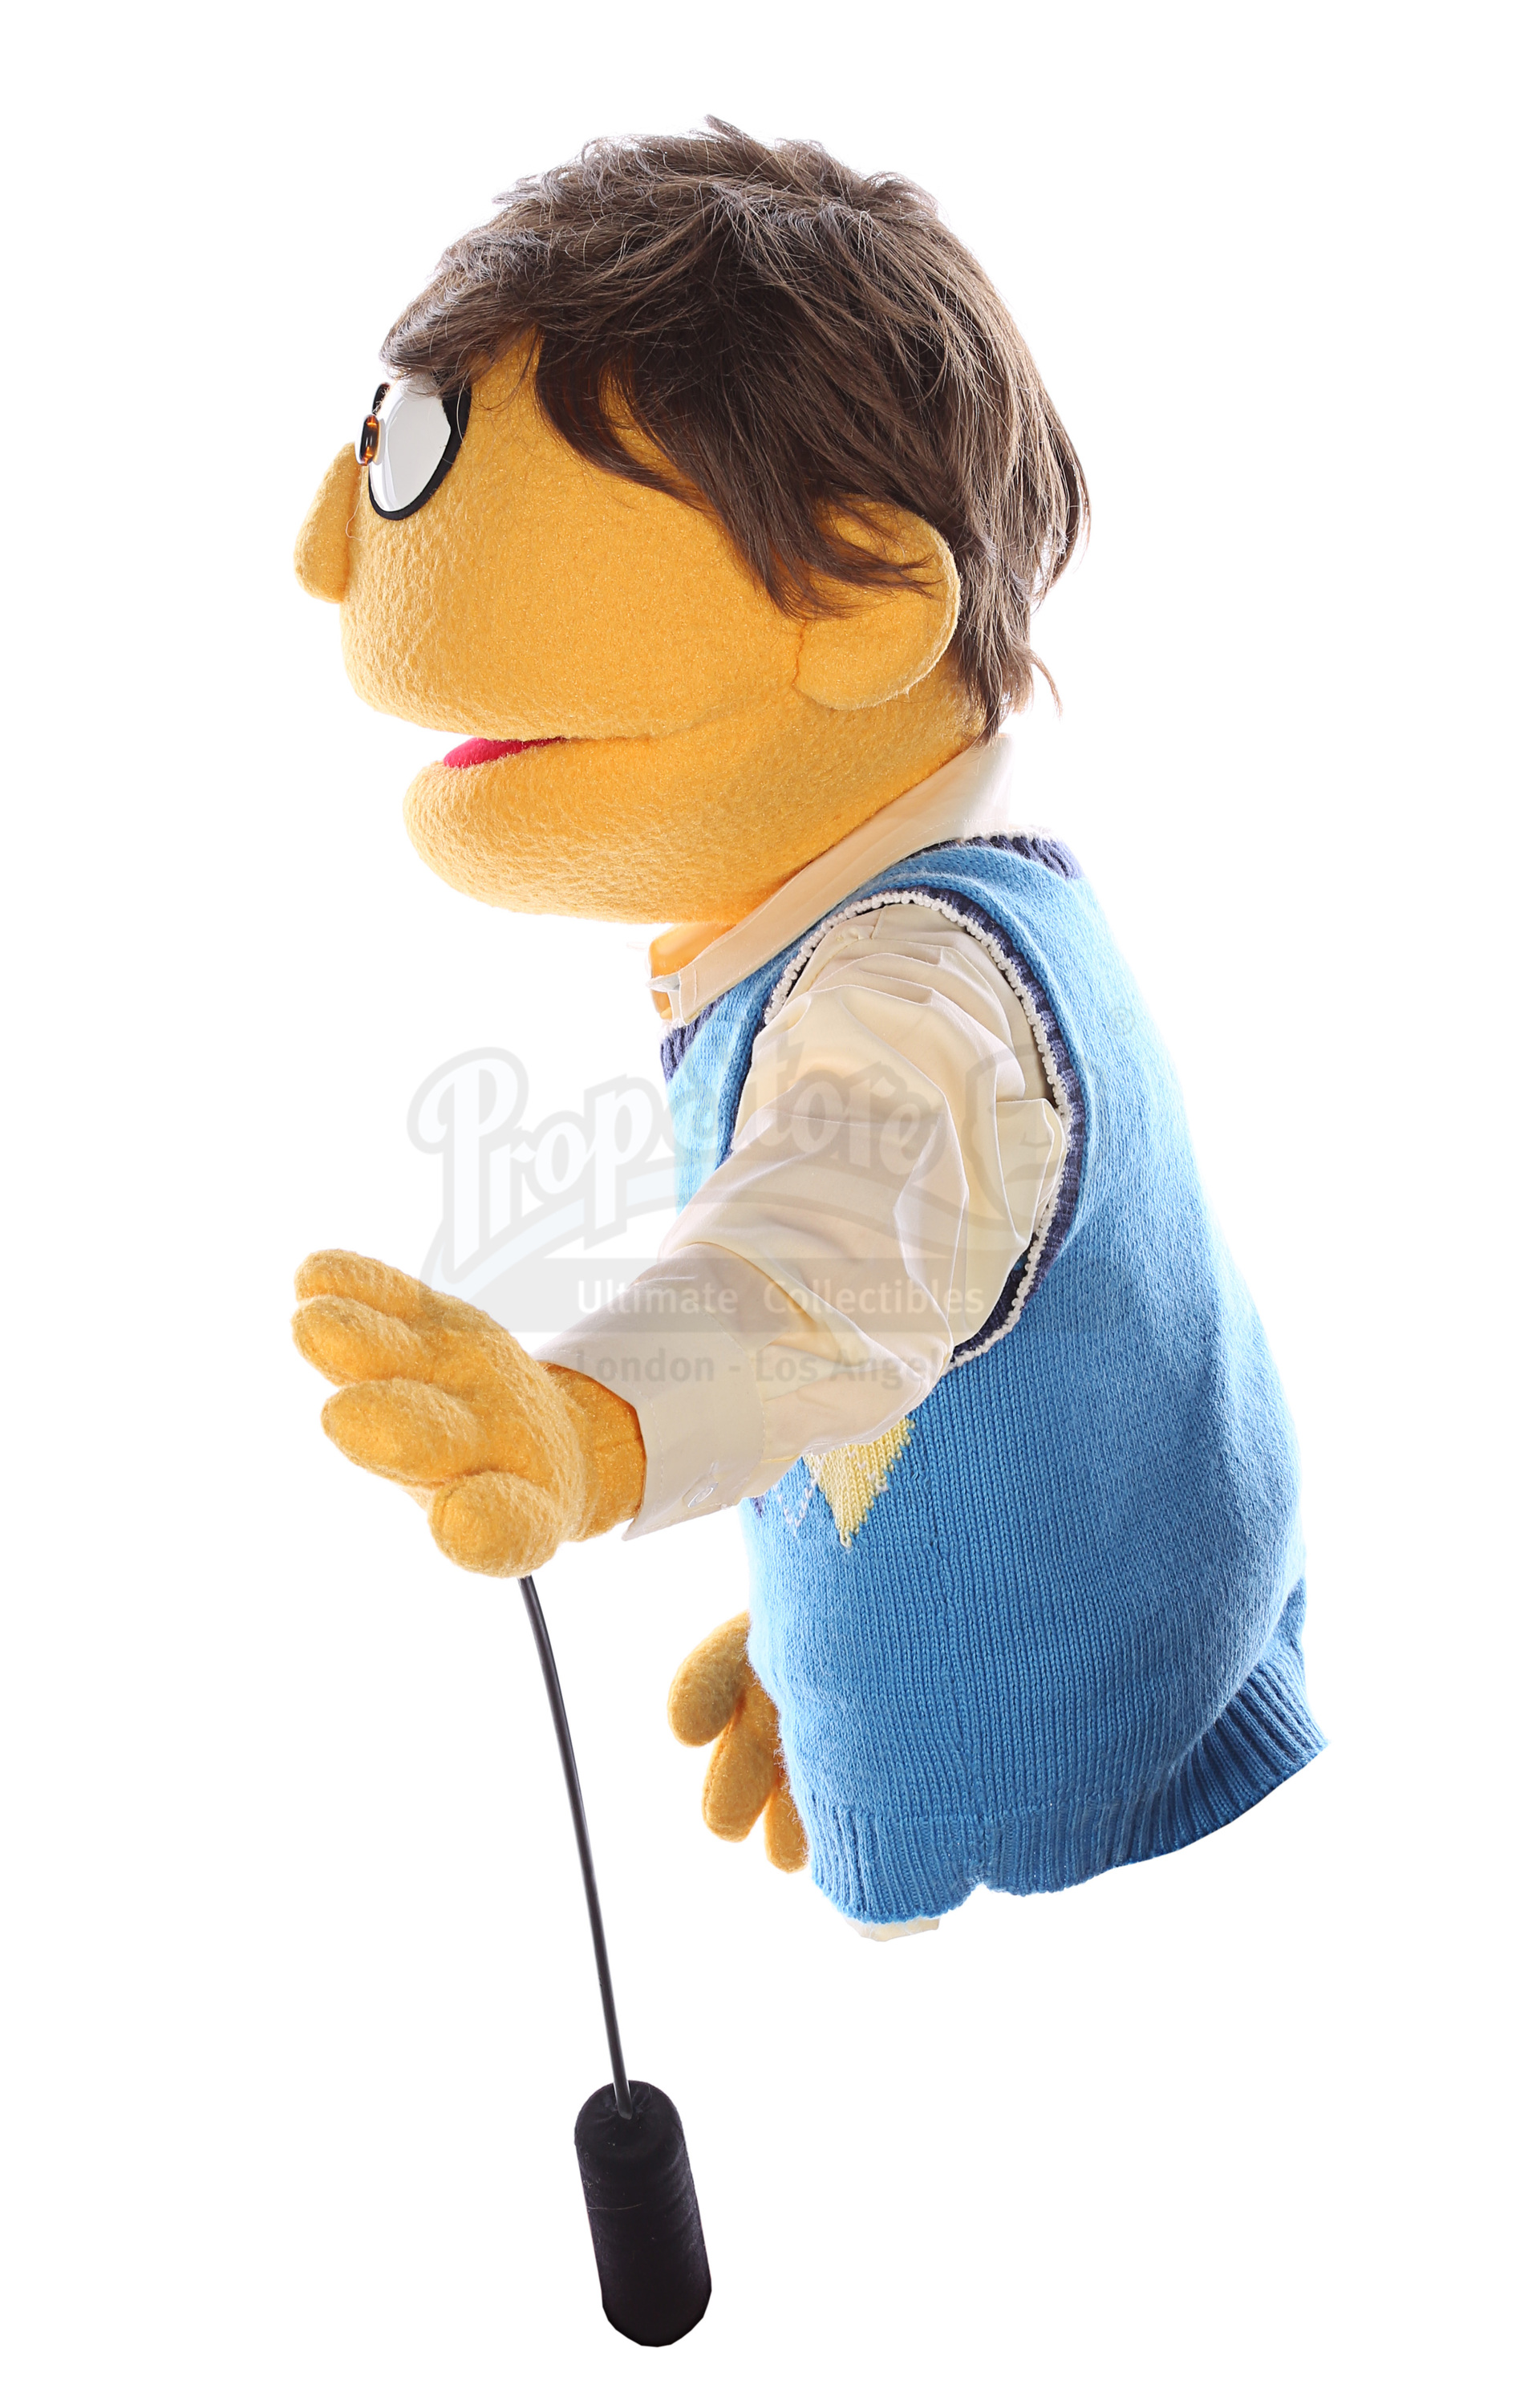 AVENUE Q (STAGE SHOW) - Cameo Puppet Collection: Mrs T, Ricky and Newcomer - Image 8 of 13